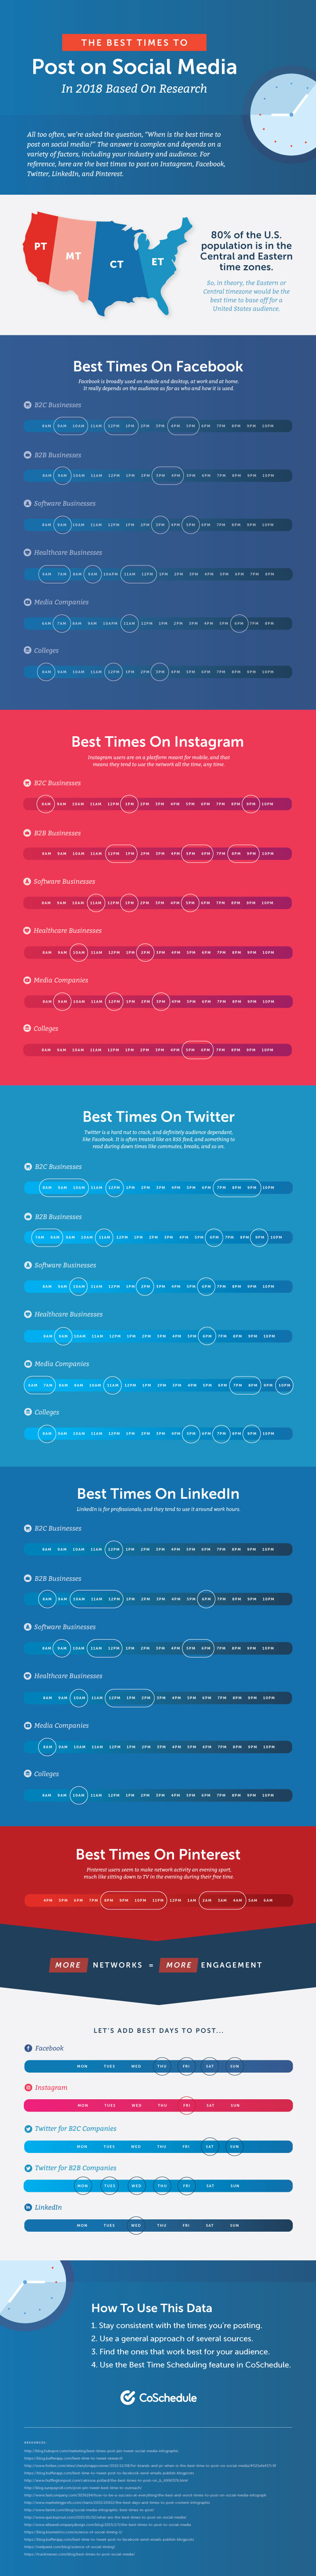 These are the best times to post to social media